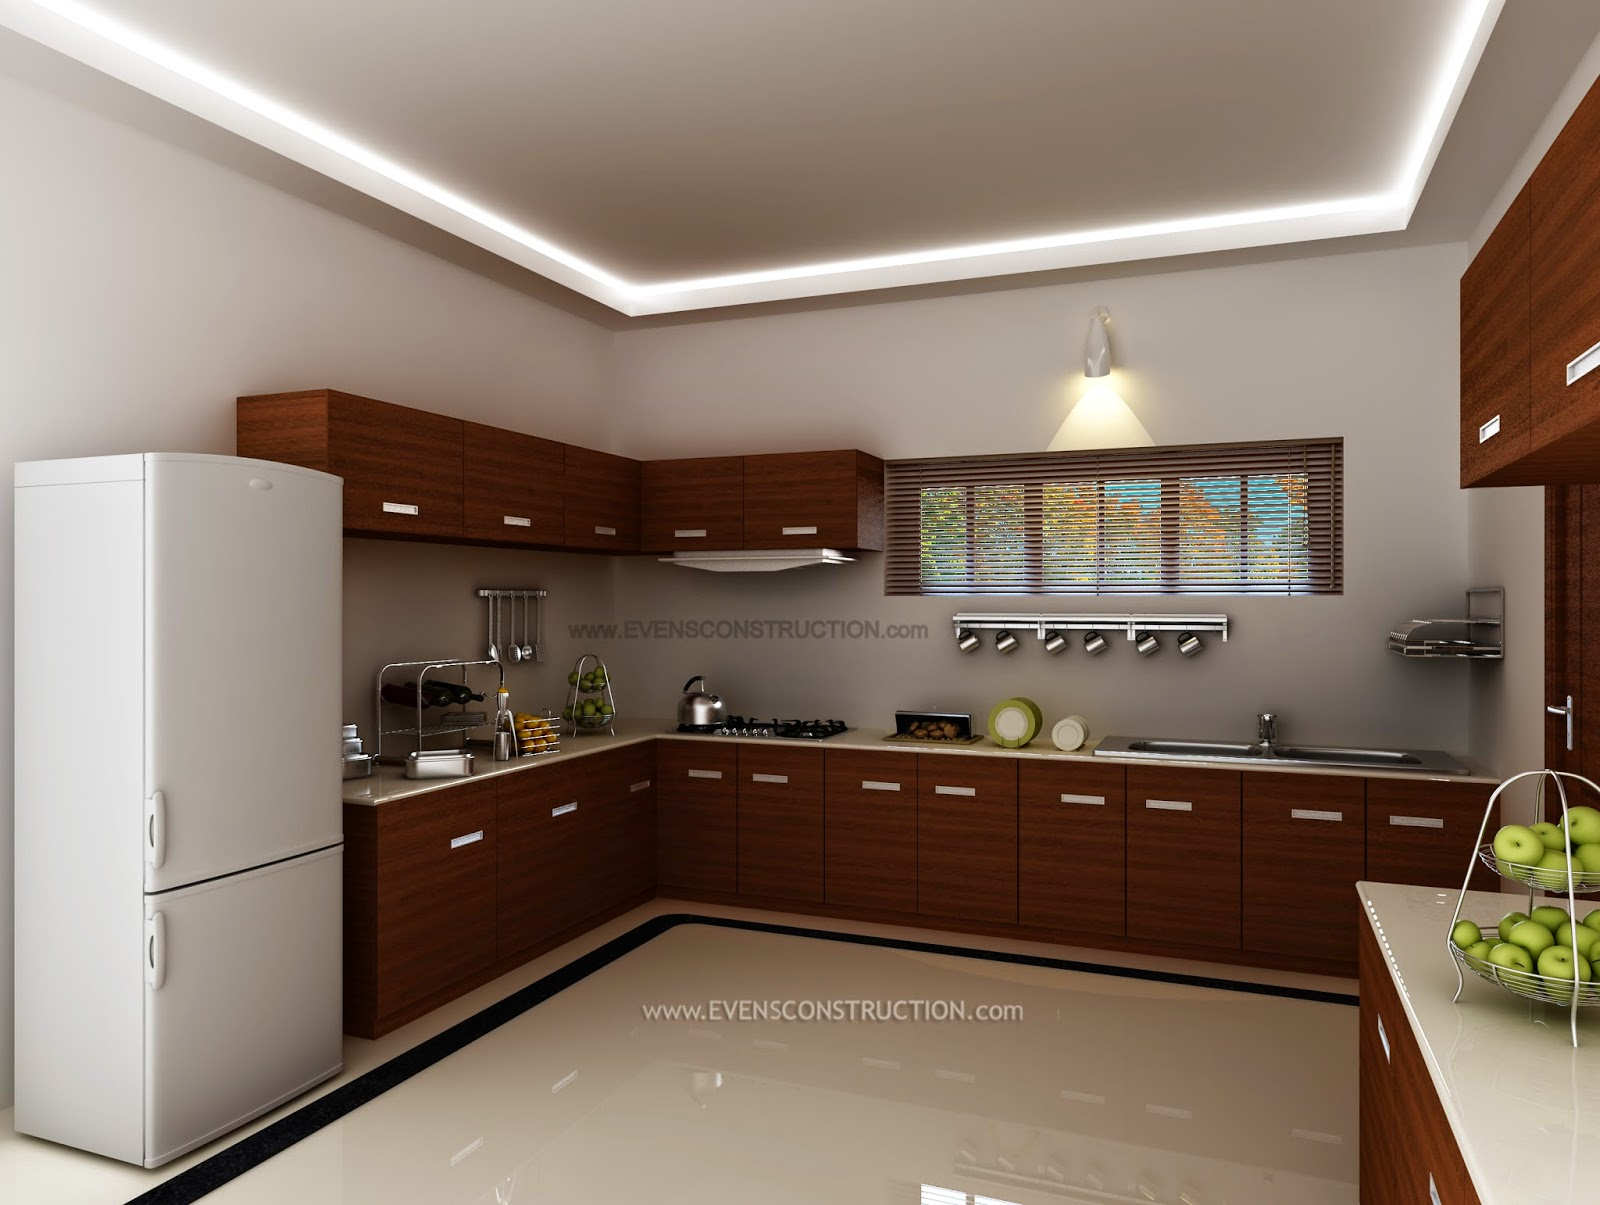 Evens construction pvt ltd kerala kitchen interior for Kerala style kitchen photos